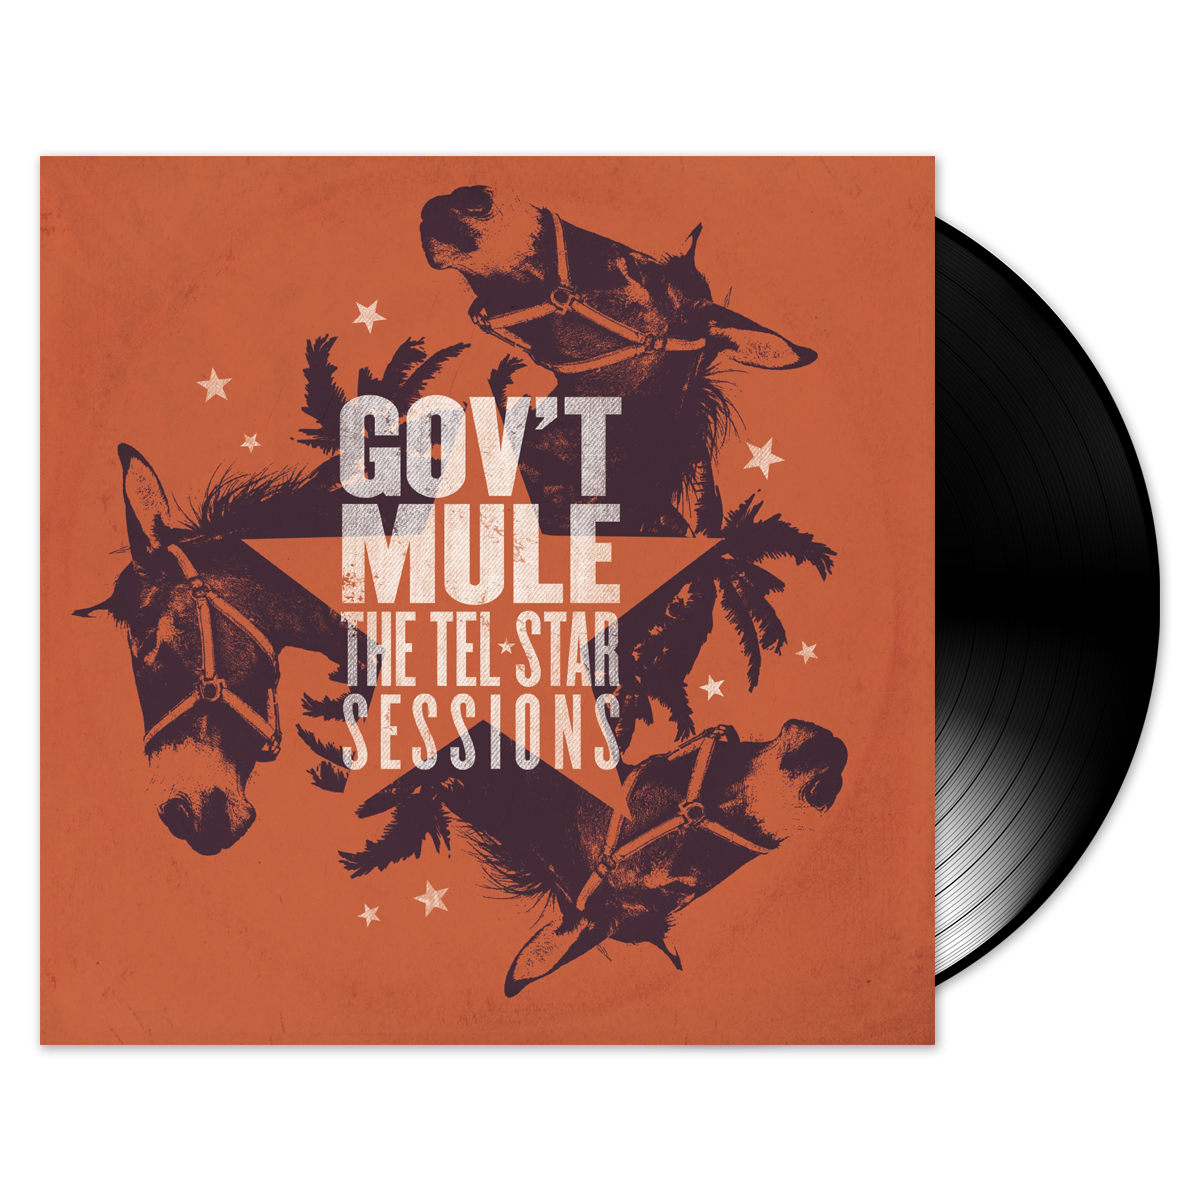 Gov't Mule - The Tel-Star Sessions LP